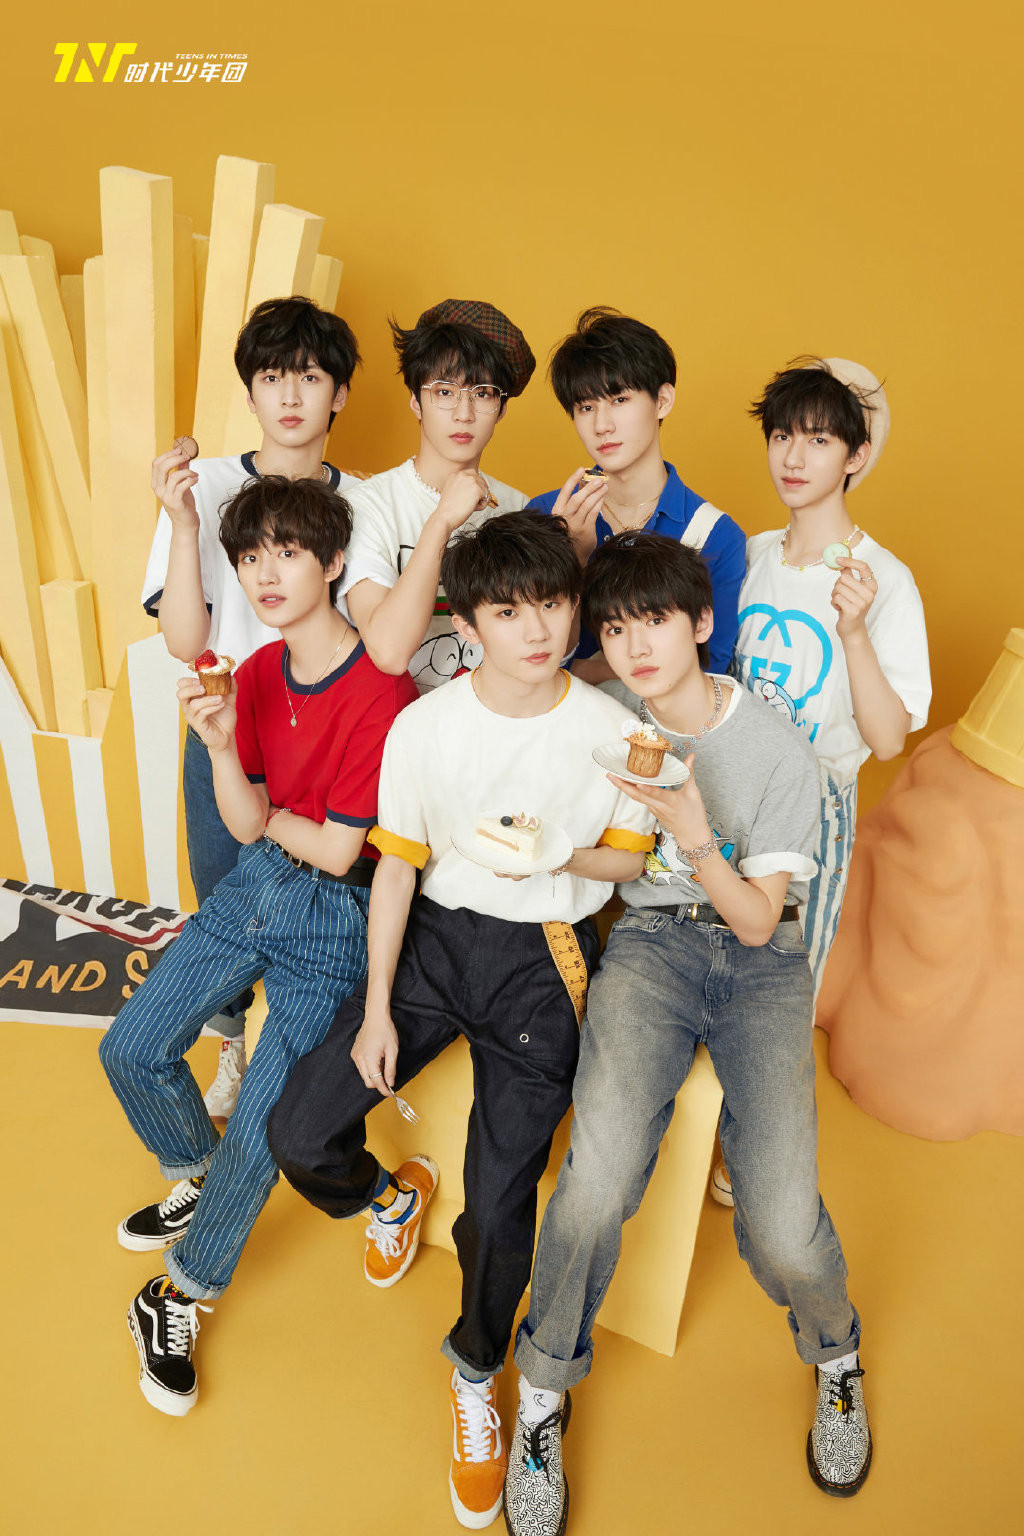 ▲The idol boy group was arrested in the police station for illegitimate children!  3 days ago, the assistant